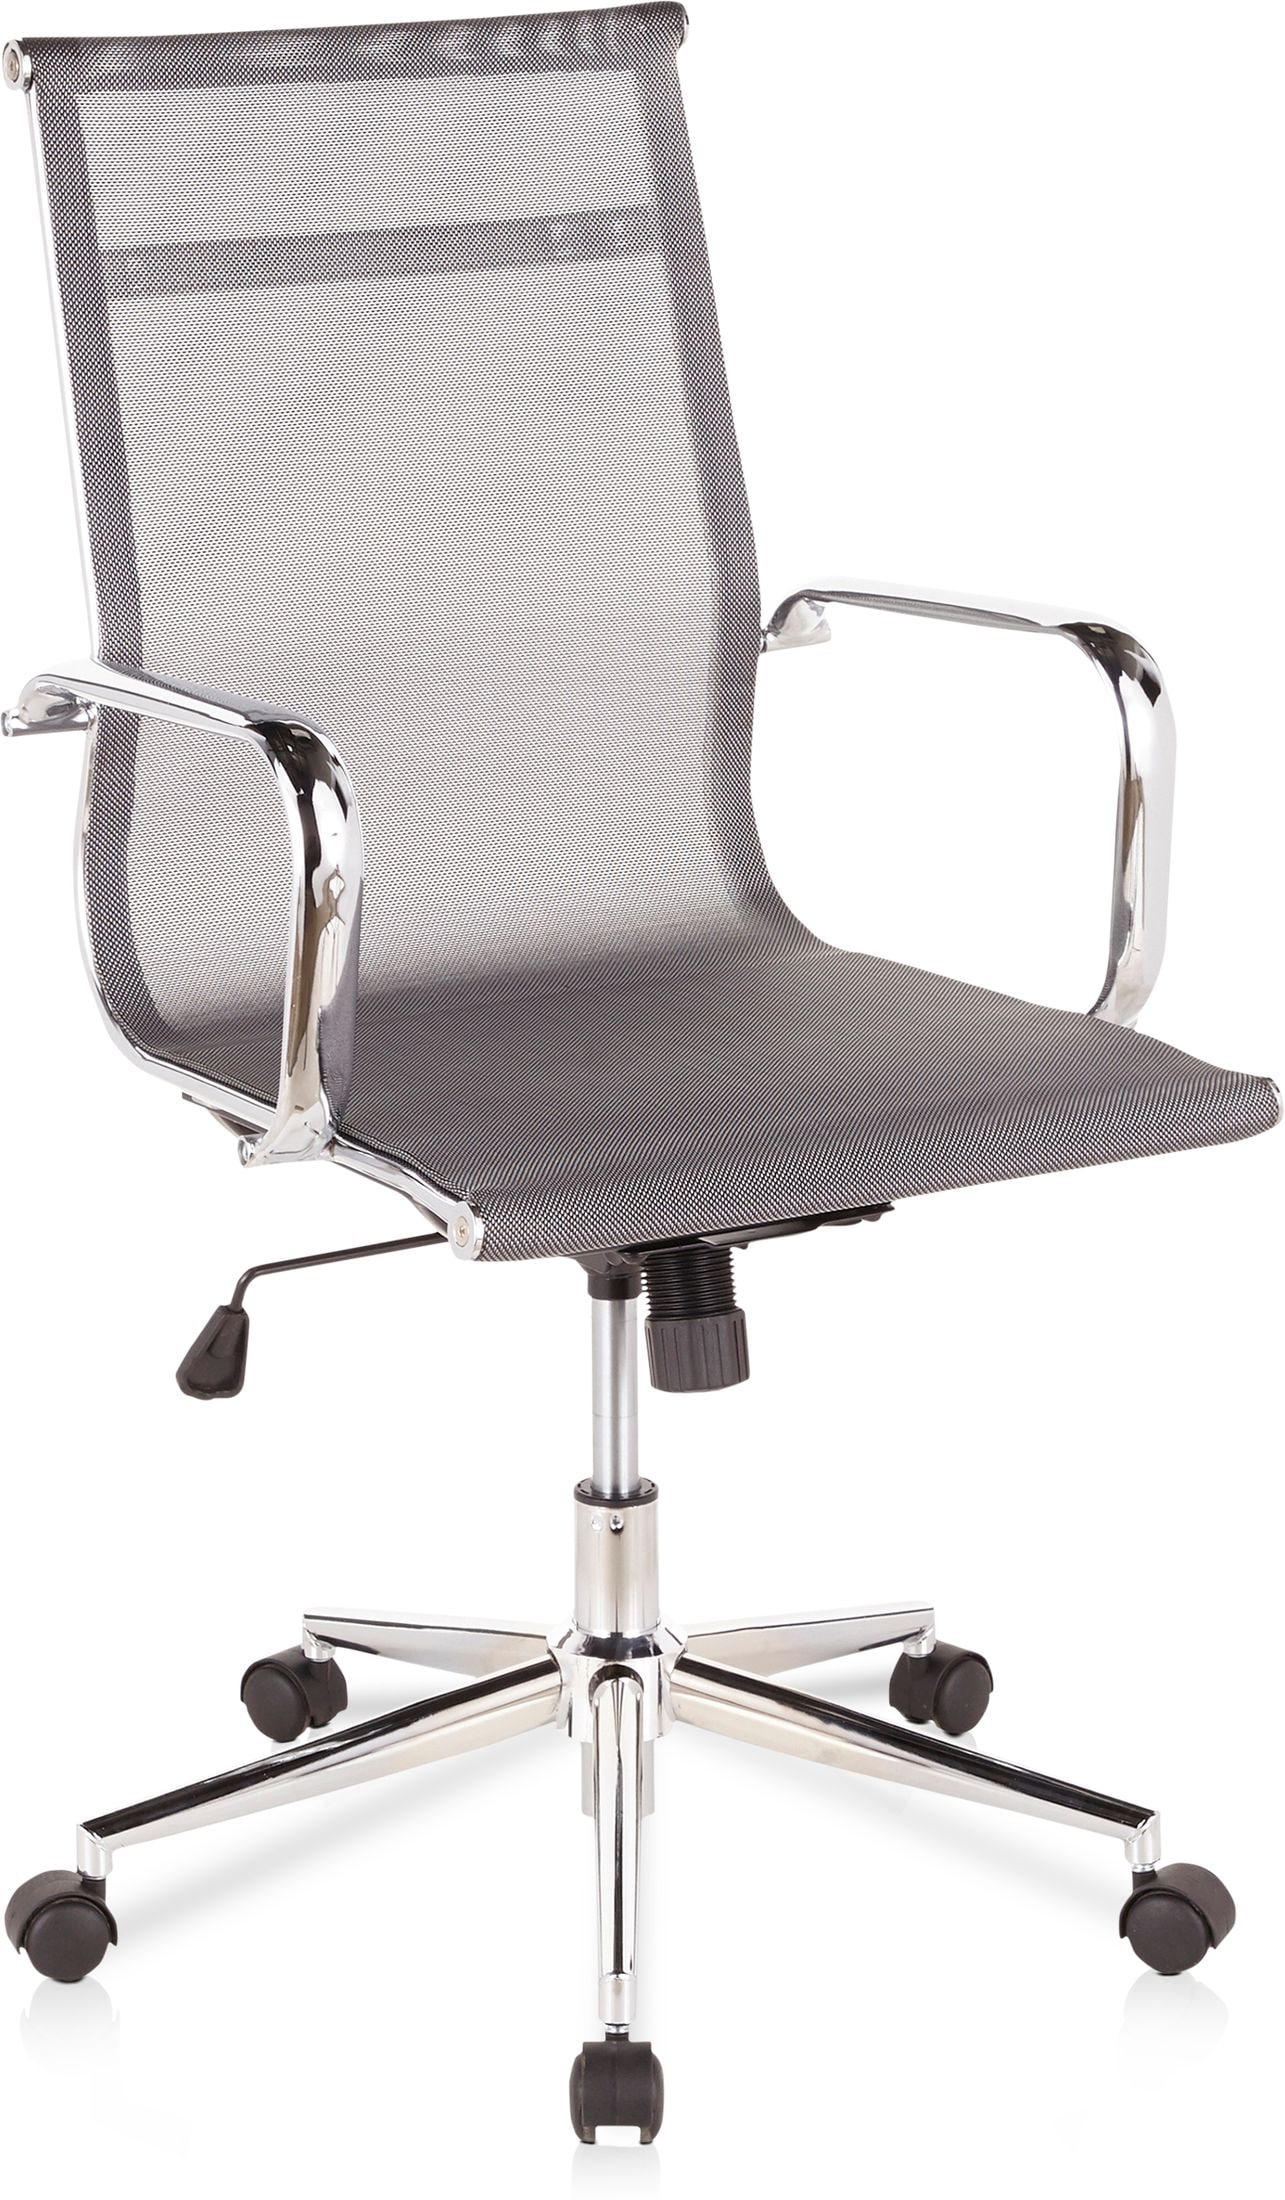 Home Office Furniture - City Office Chair